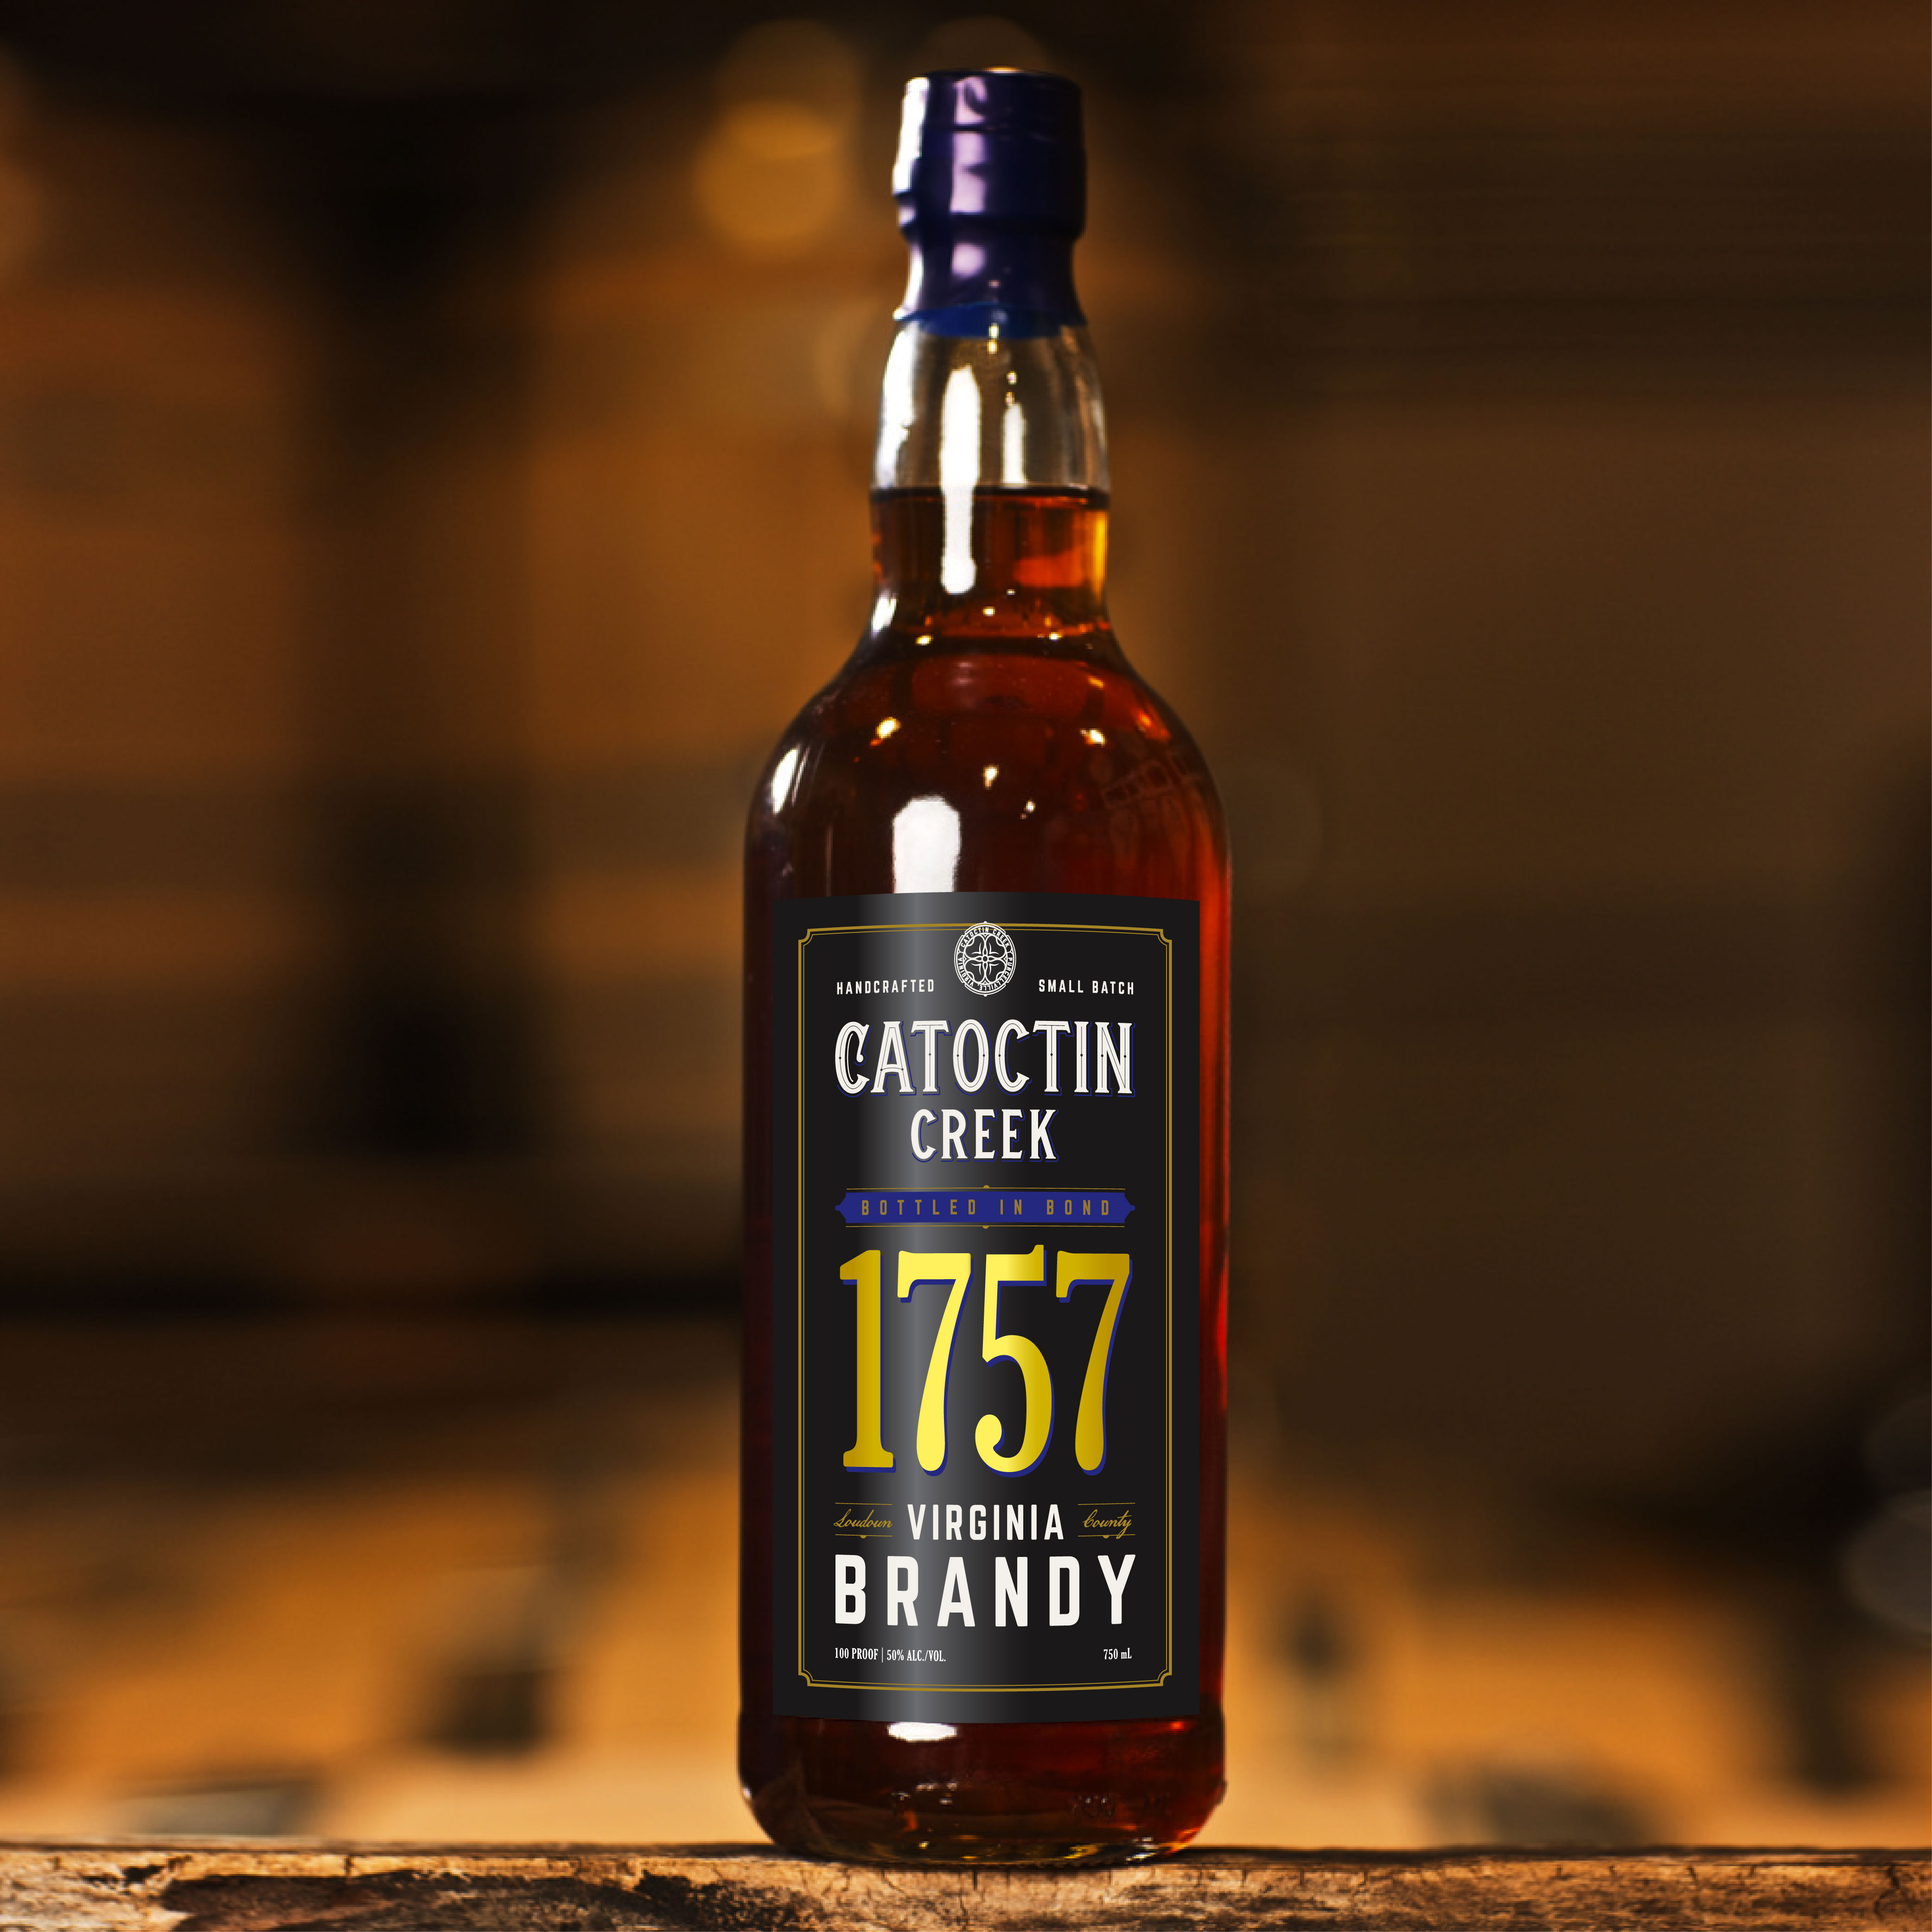 1757 Virginia Brandy XO BIB